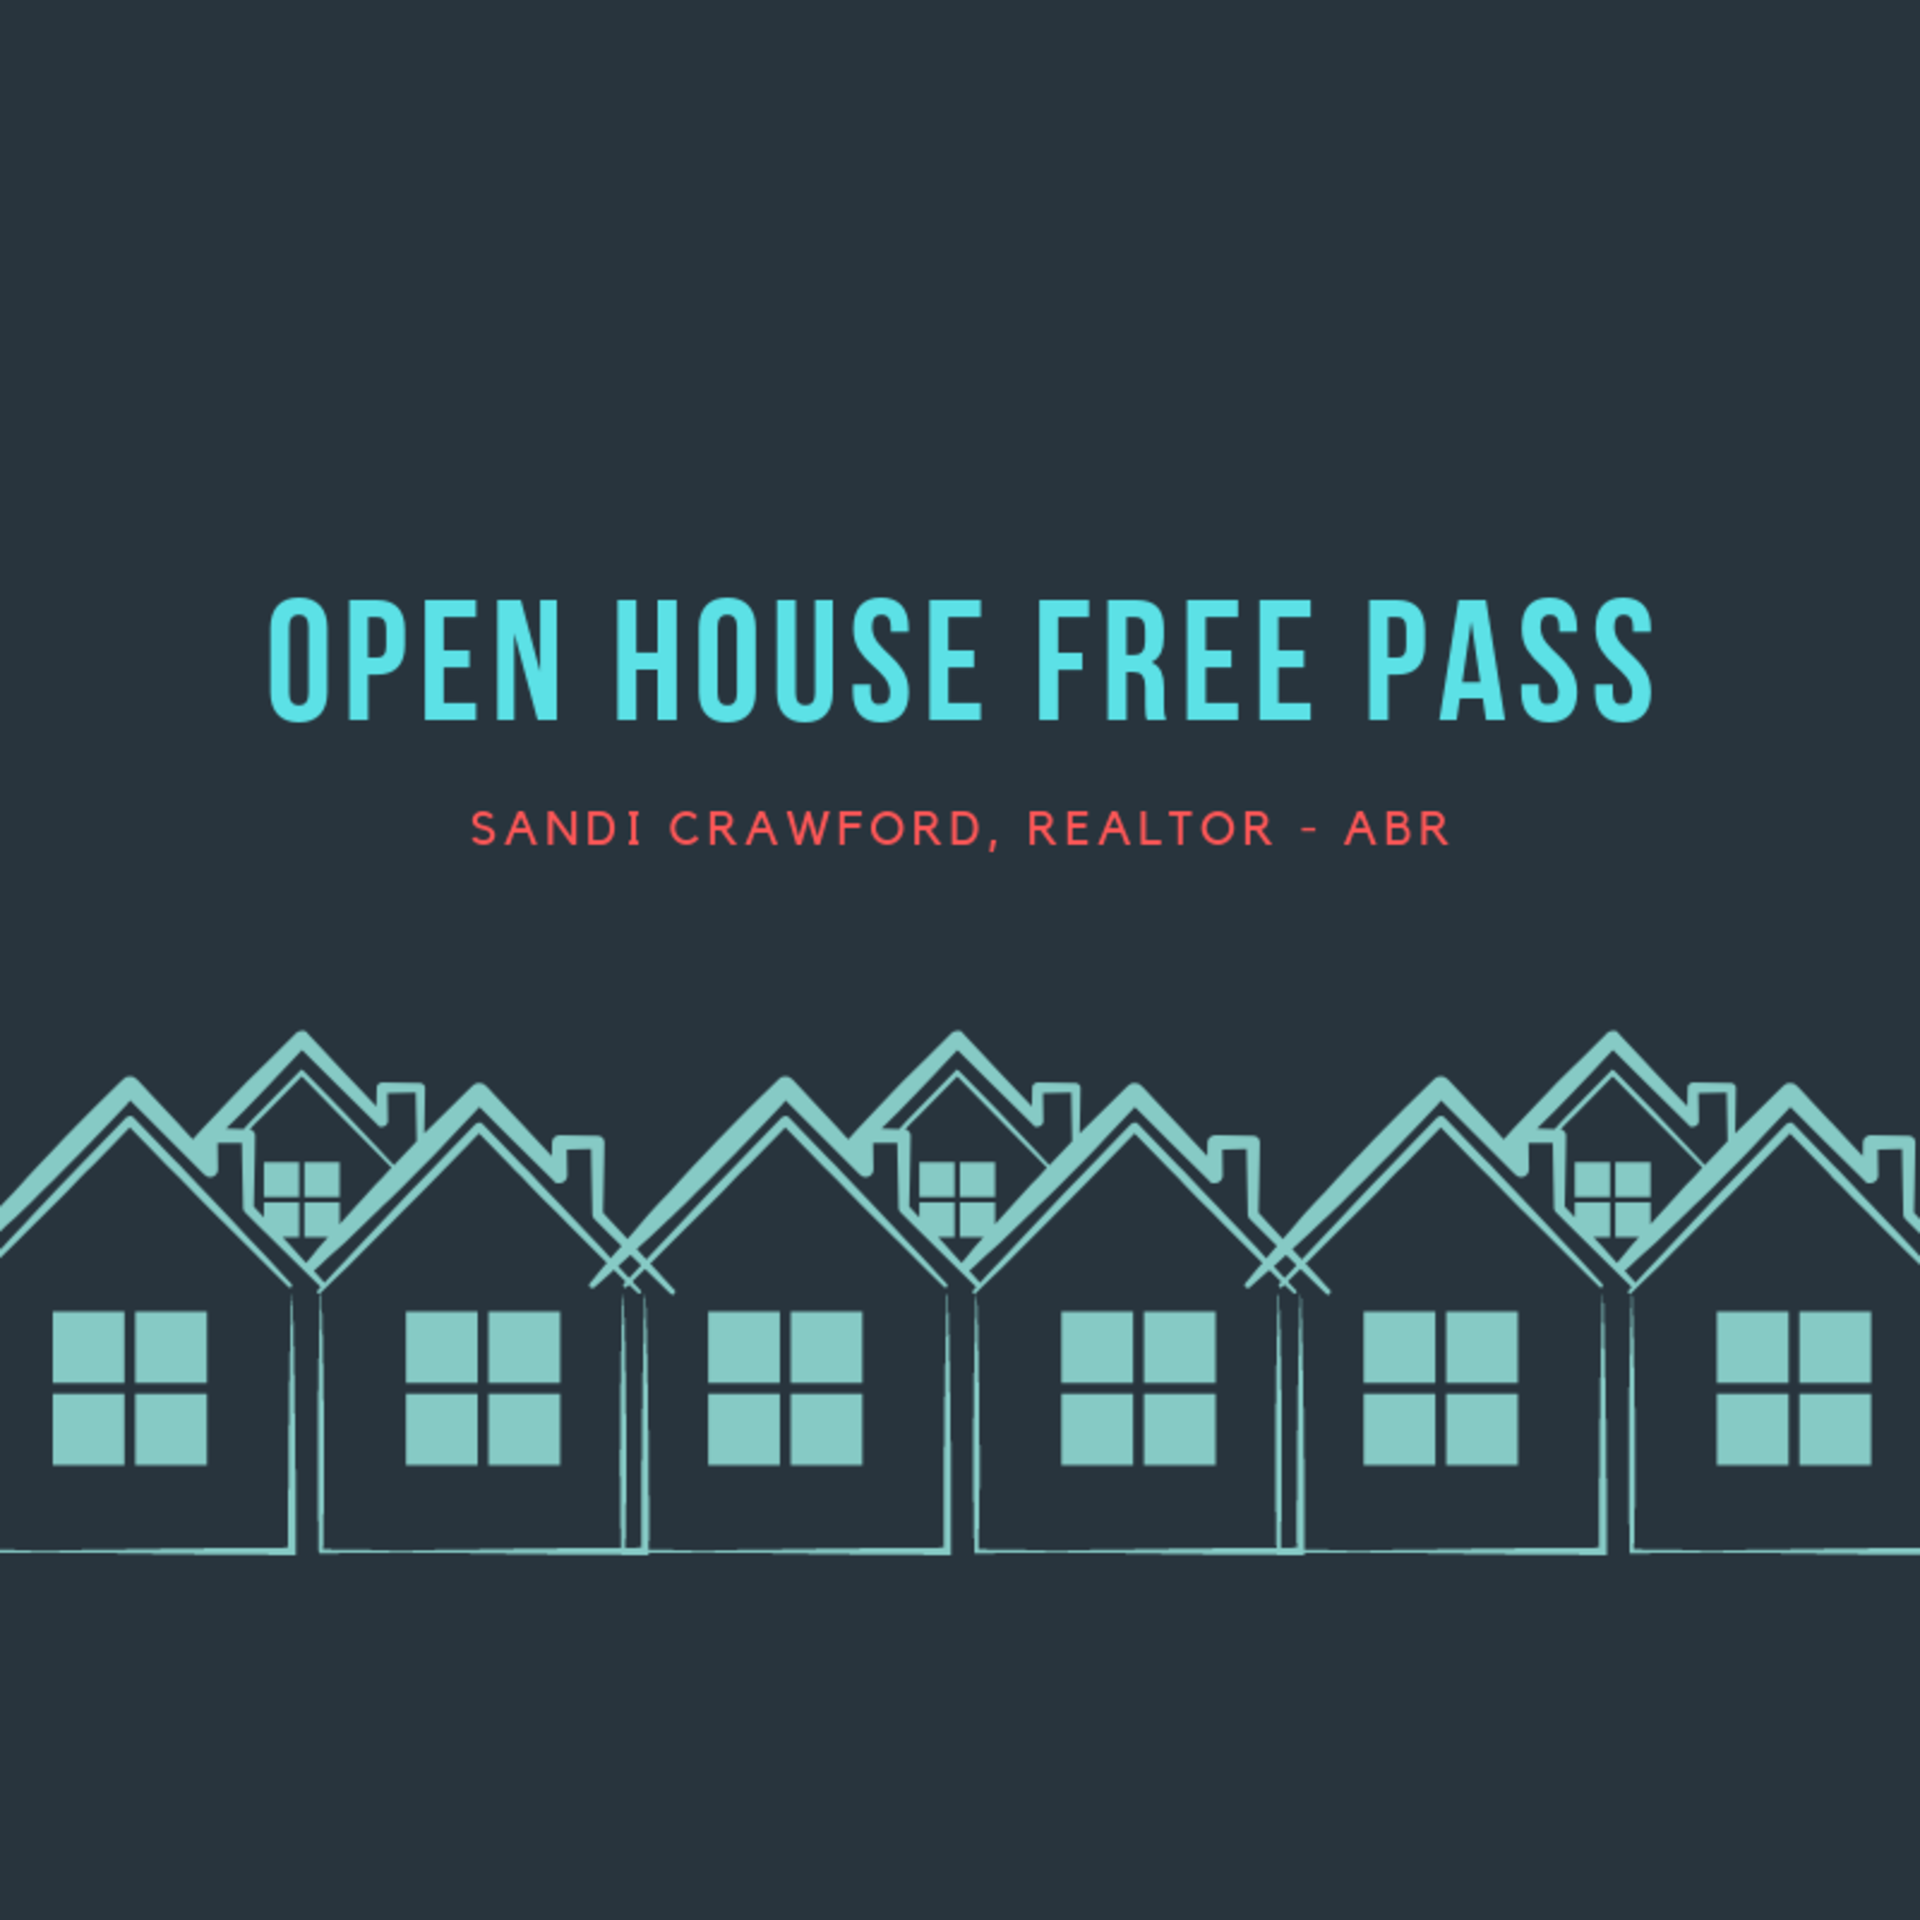 Take a Tour at an Open House!